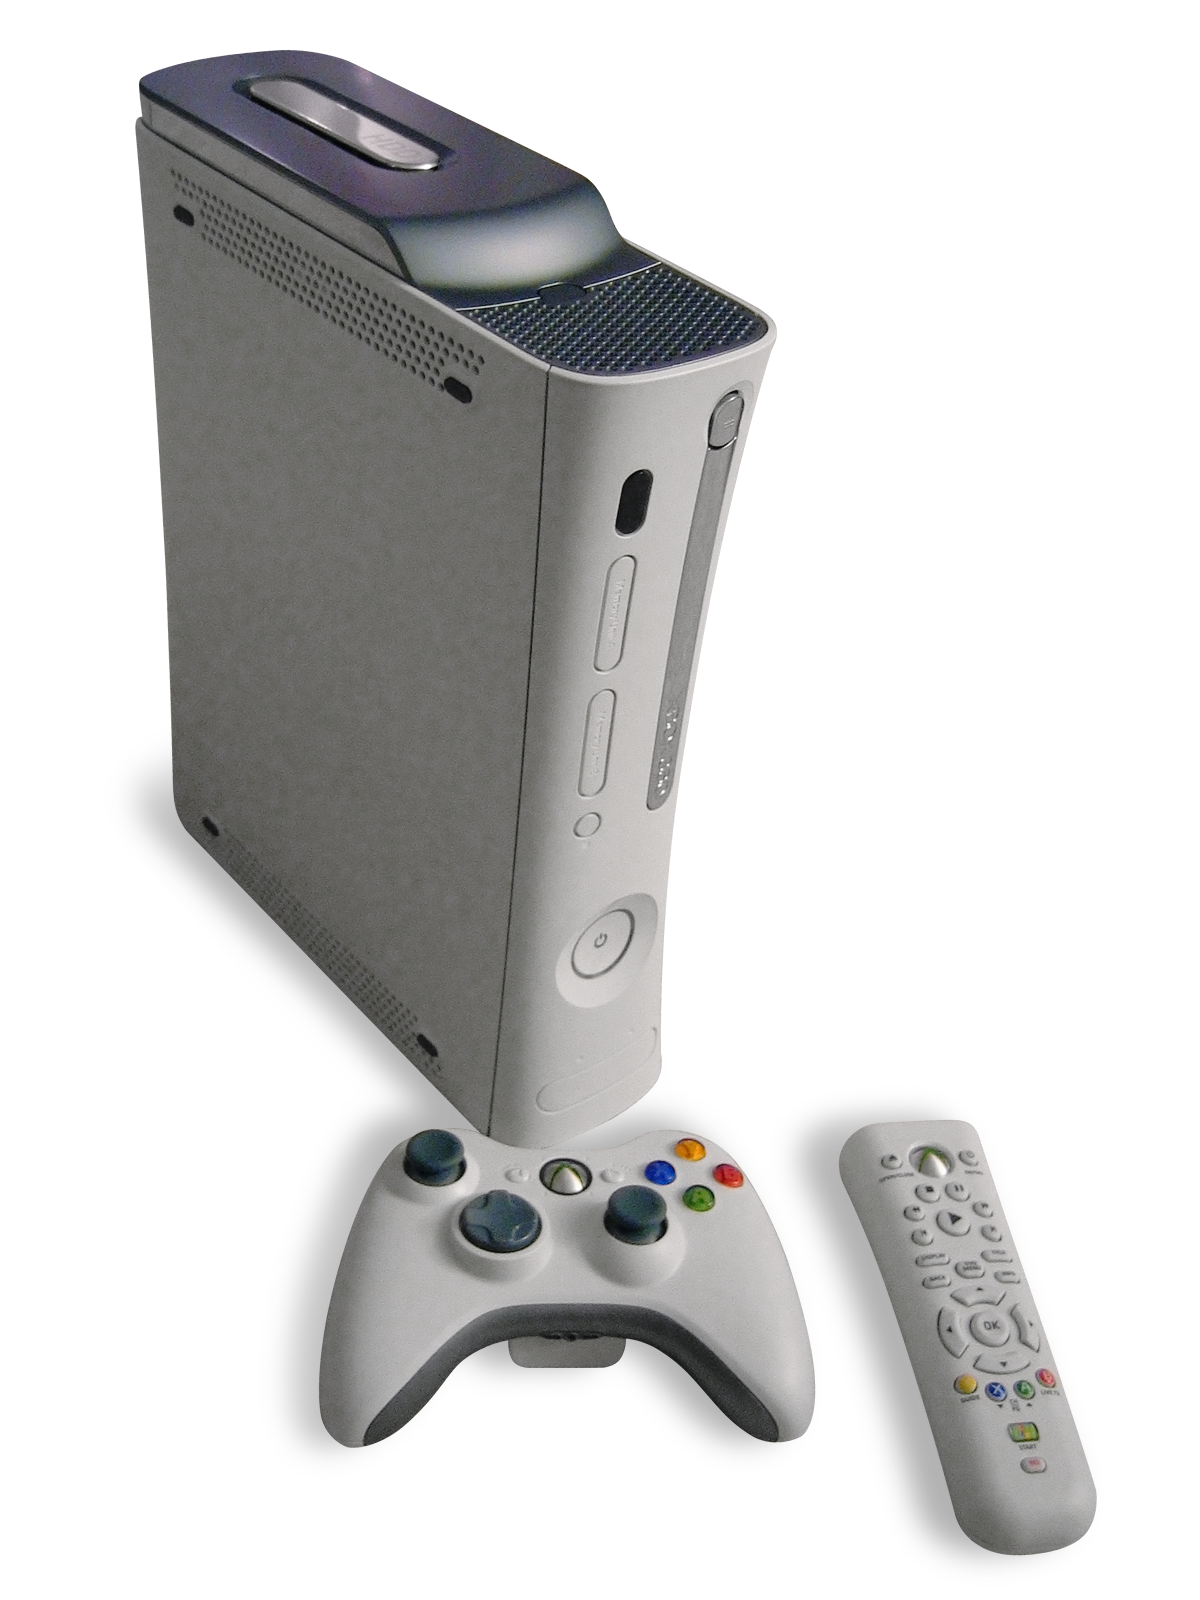 Xbox 360 Vs Play Station 3 (MegaPost)